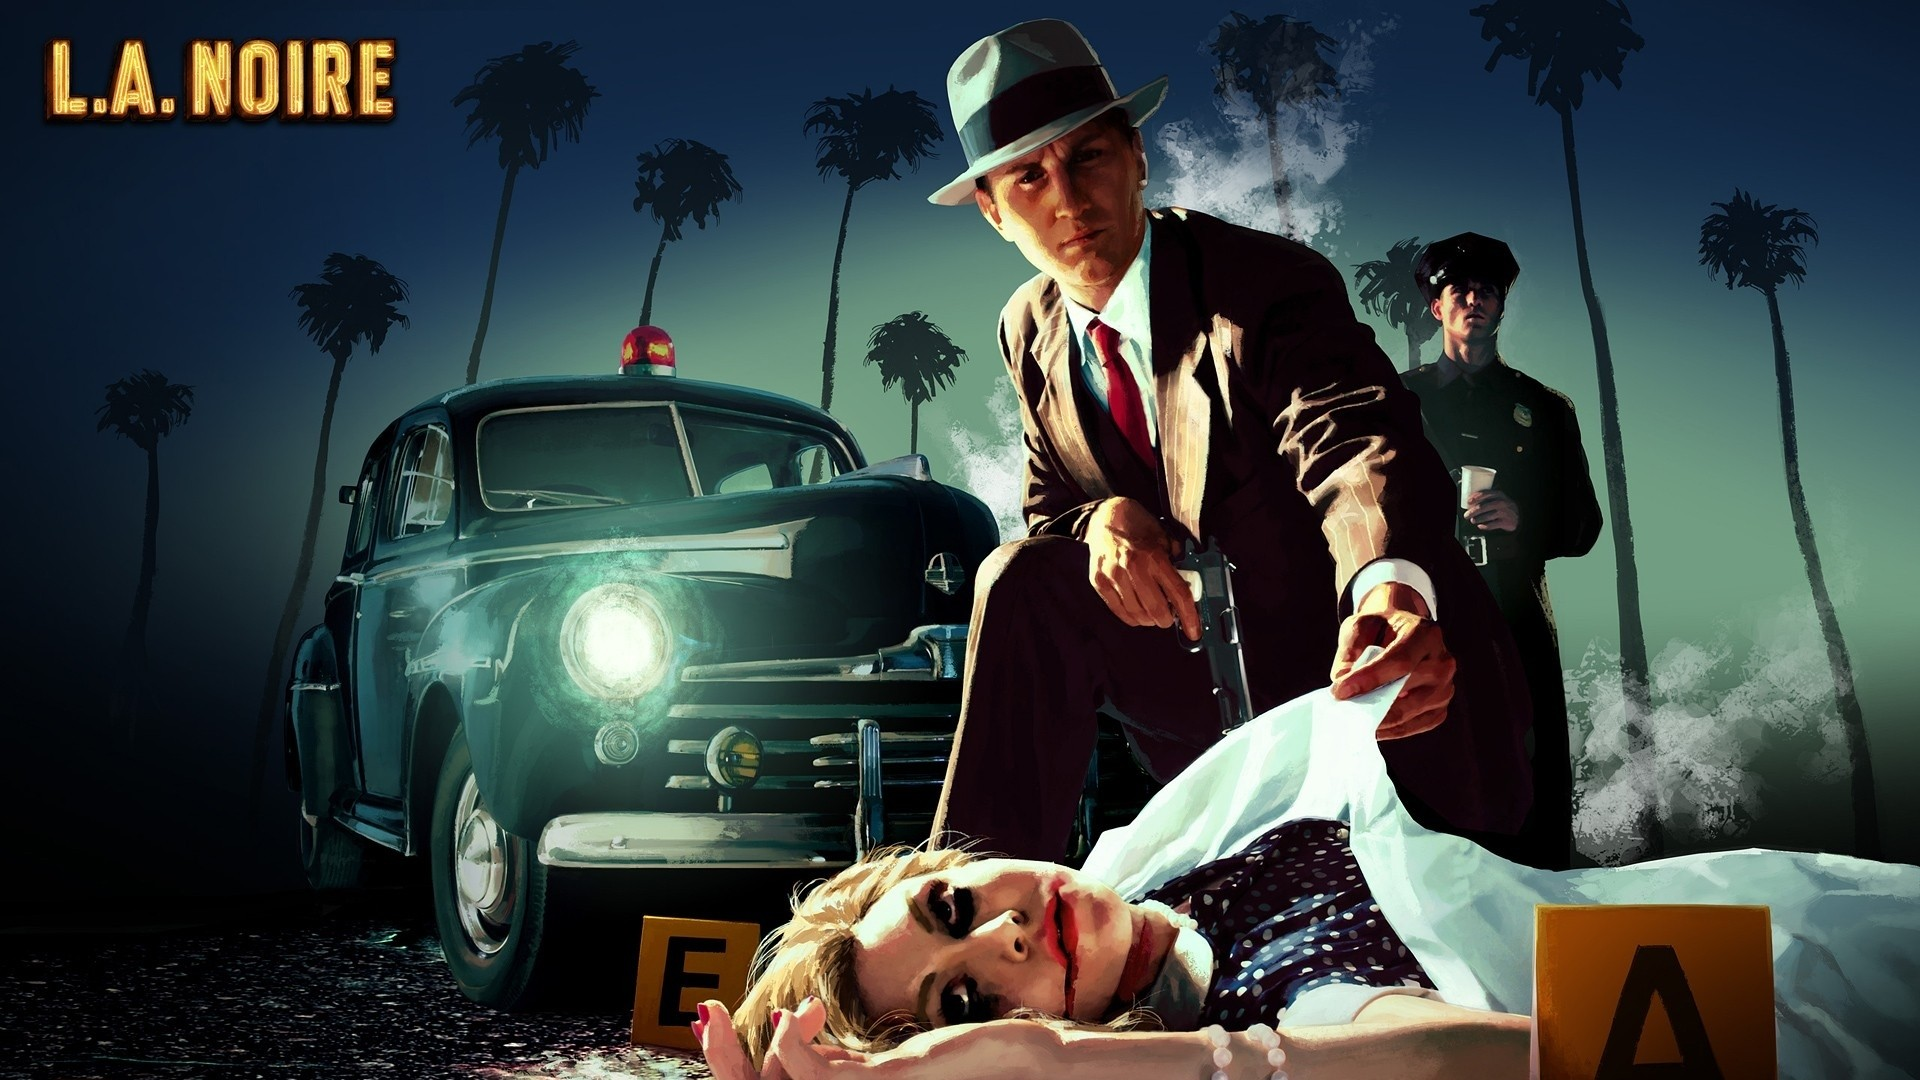 Wallpaper la noire, male, murder, girl, car, palms, police